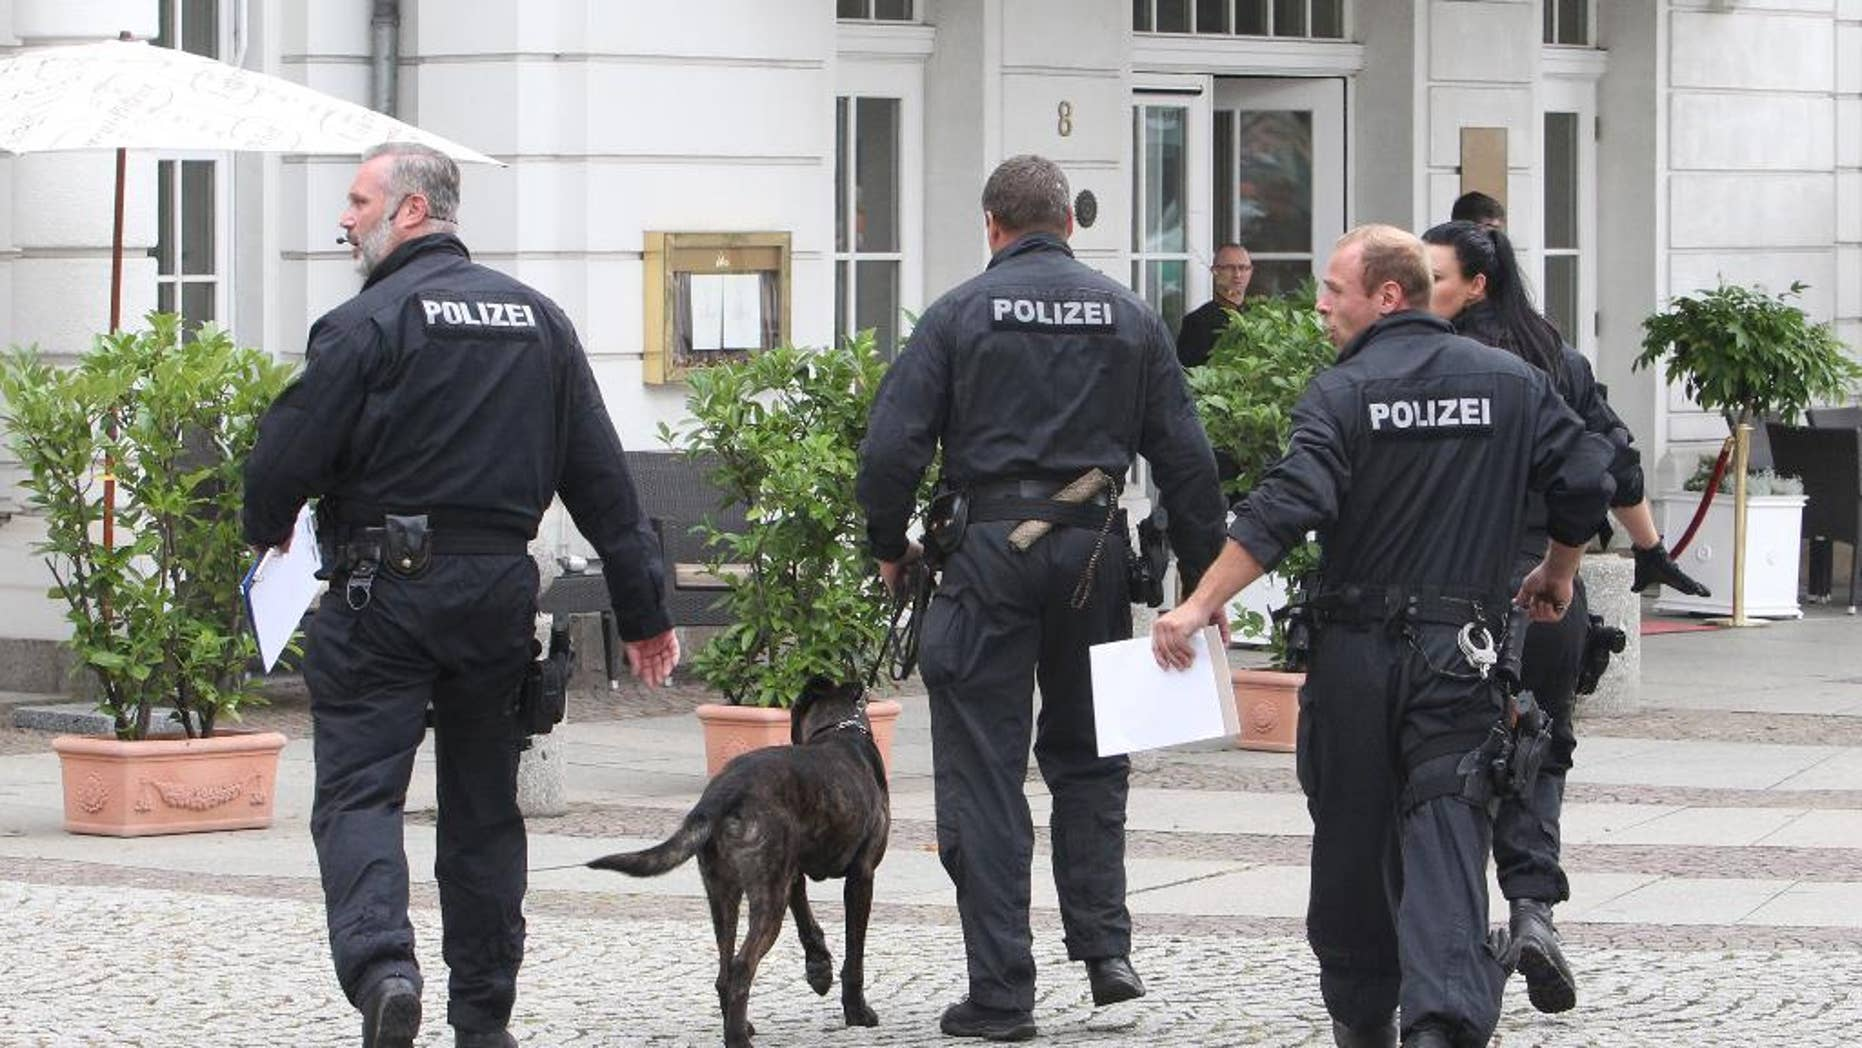 Police officers walk with a dog iinto the Hotel Fuerstenhof in Leipzig, Germany,Tuesday Sept. 6, 2016.  Police sealed off the hotel following a terror warning.  Police in the eastern city of Leipzig, Germany, are investigating an anonymous threat of an attack against a hotel and have established a heavy police presence in front of the building. Police spokesman Alexander Bertram said the upscale Fuerstenhof hotel received an anonymous phone call Tuesday. A search did not turn up anything suspicious. (Sebastian Willnow/dpa via AP)